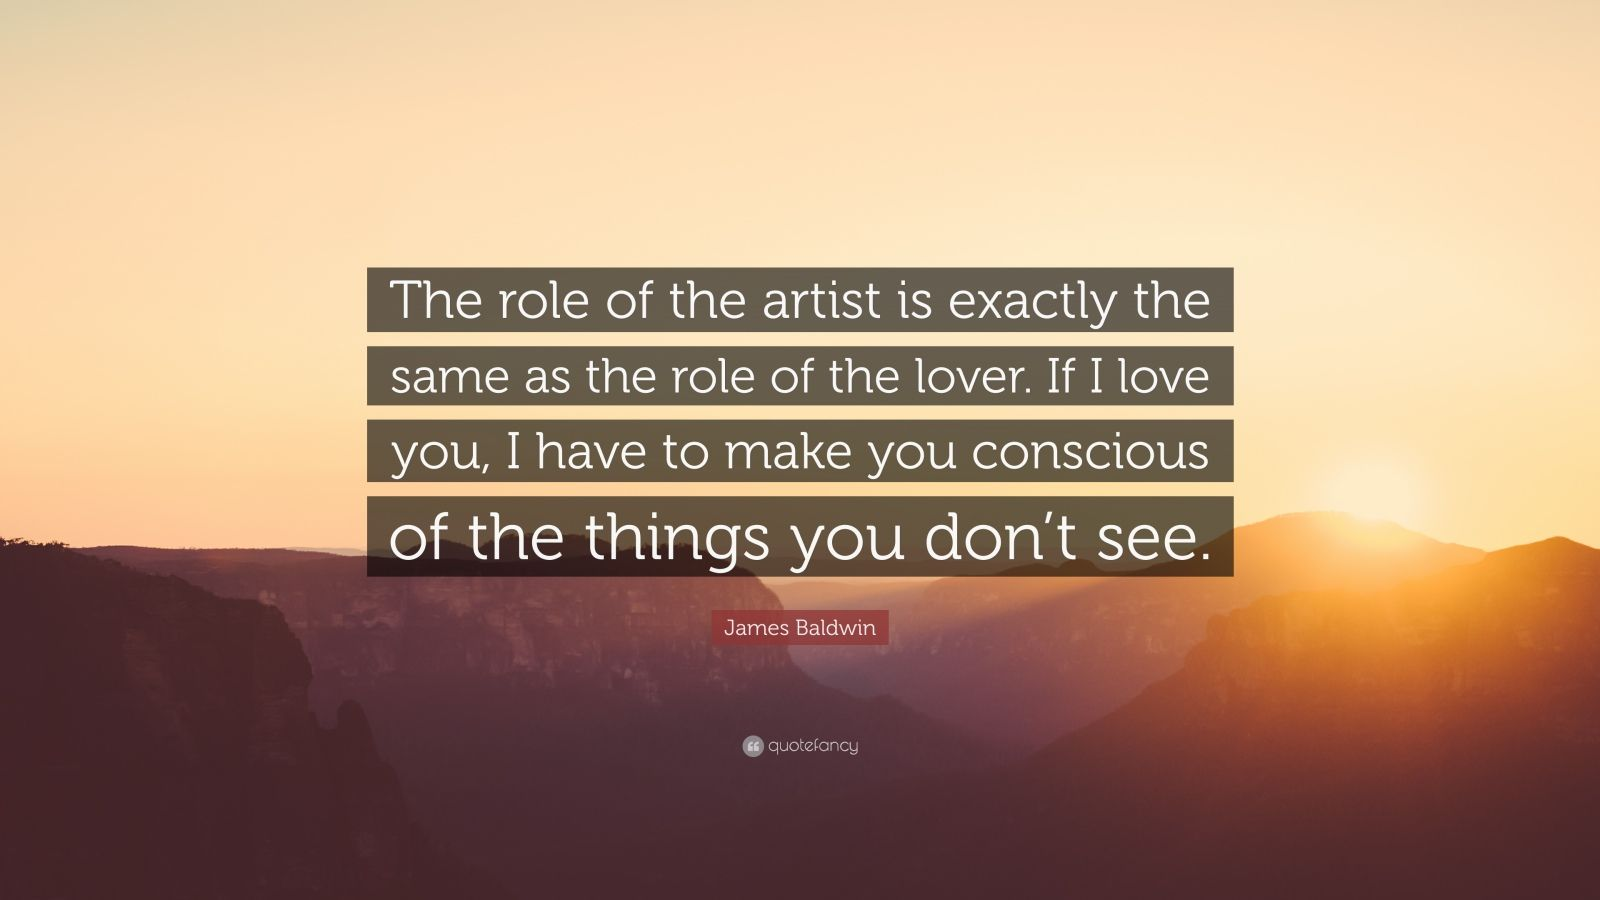 """James Baldwin Quote: """"The role of the artist is exactly the same as the role of the lover. If I love you, I have to make you conscious of the things you don't see."""""""